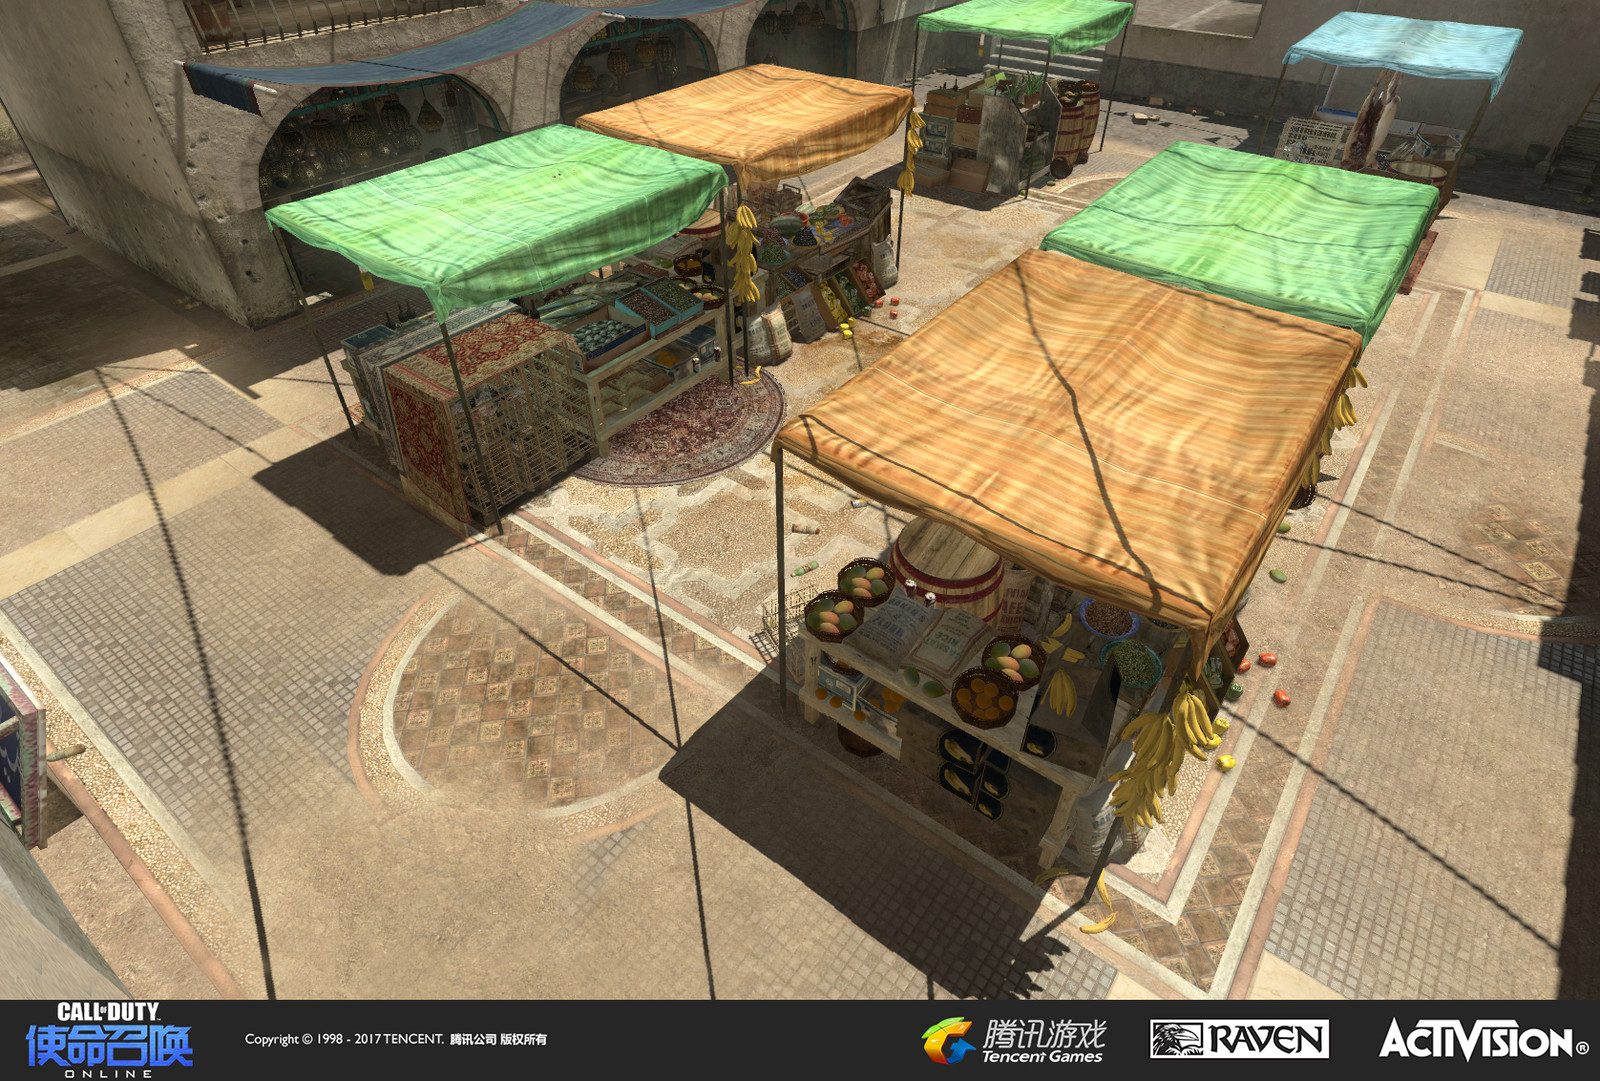 Seatown: A re-imagined multiplayer map originally appearing in Modern Warfare 3. I recreated the terrain and set dress to be more colorful and varied than the original setting.